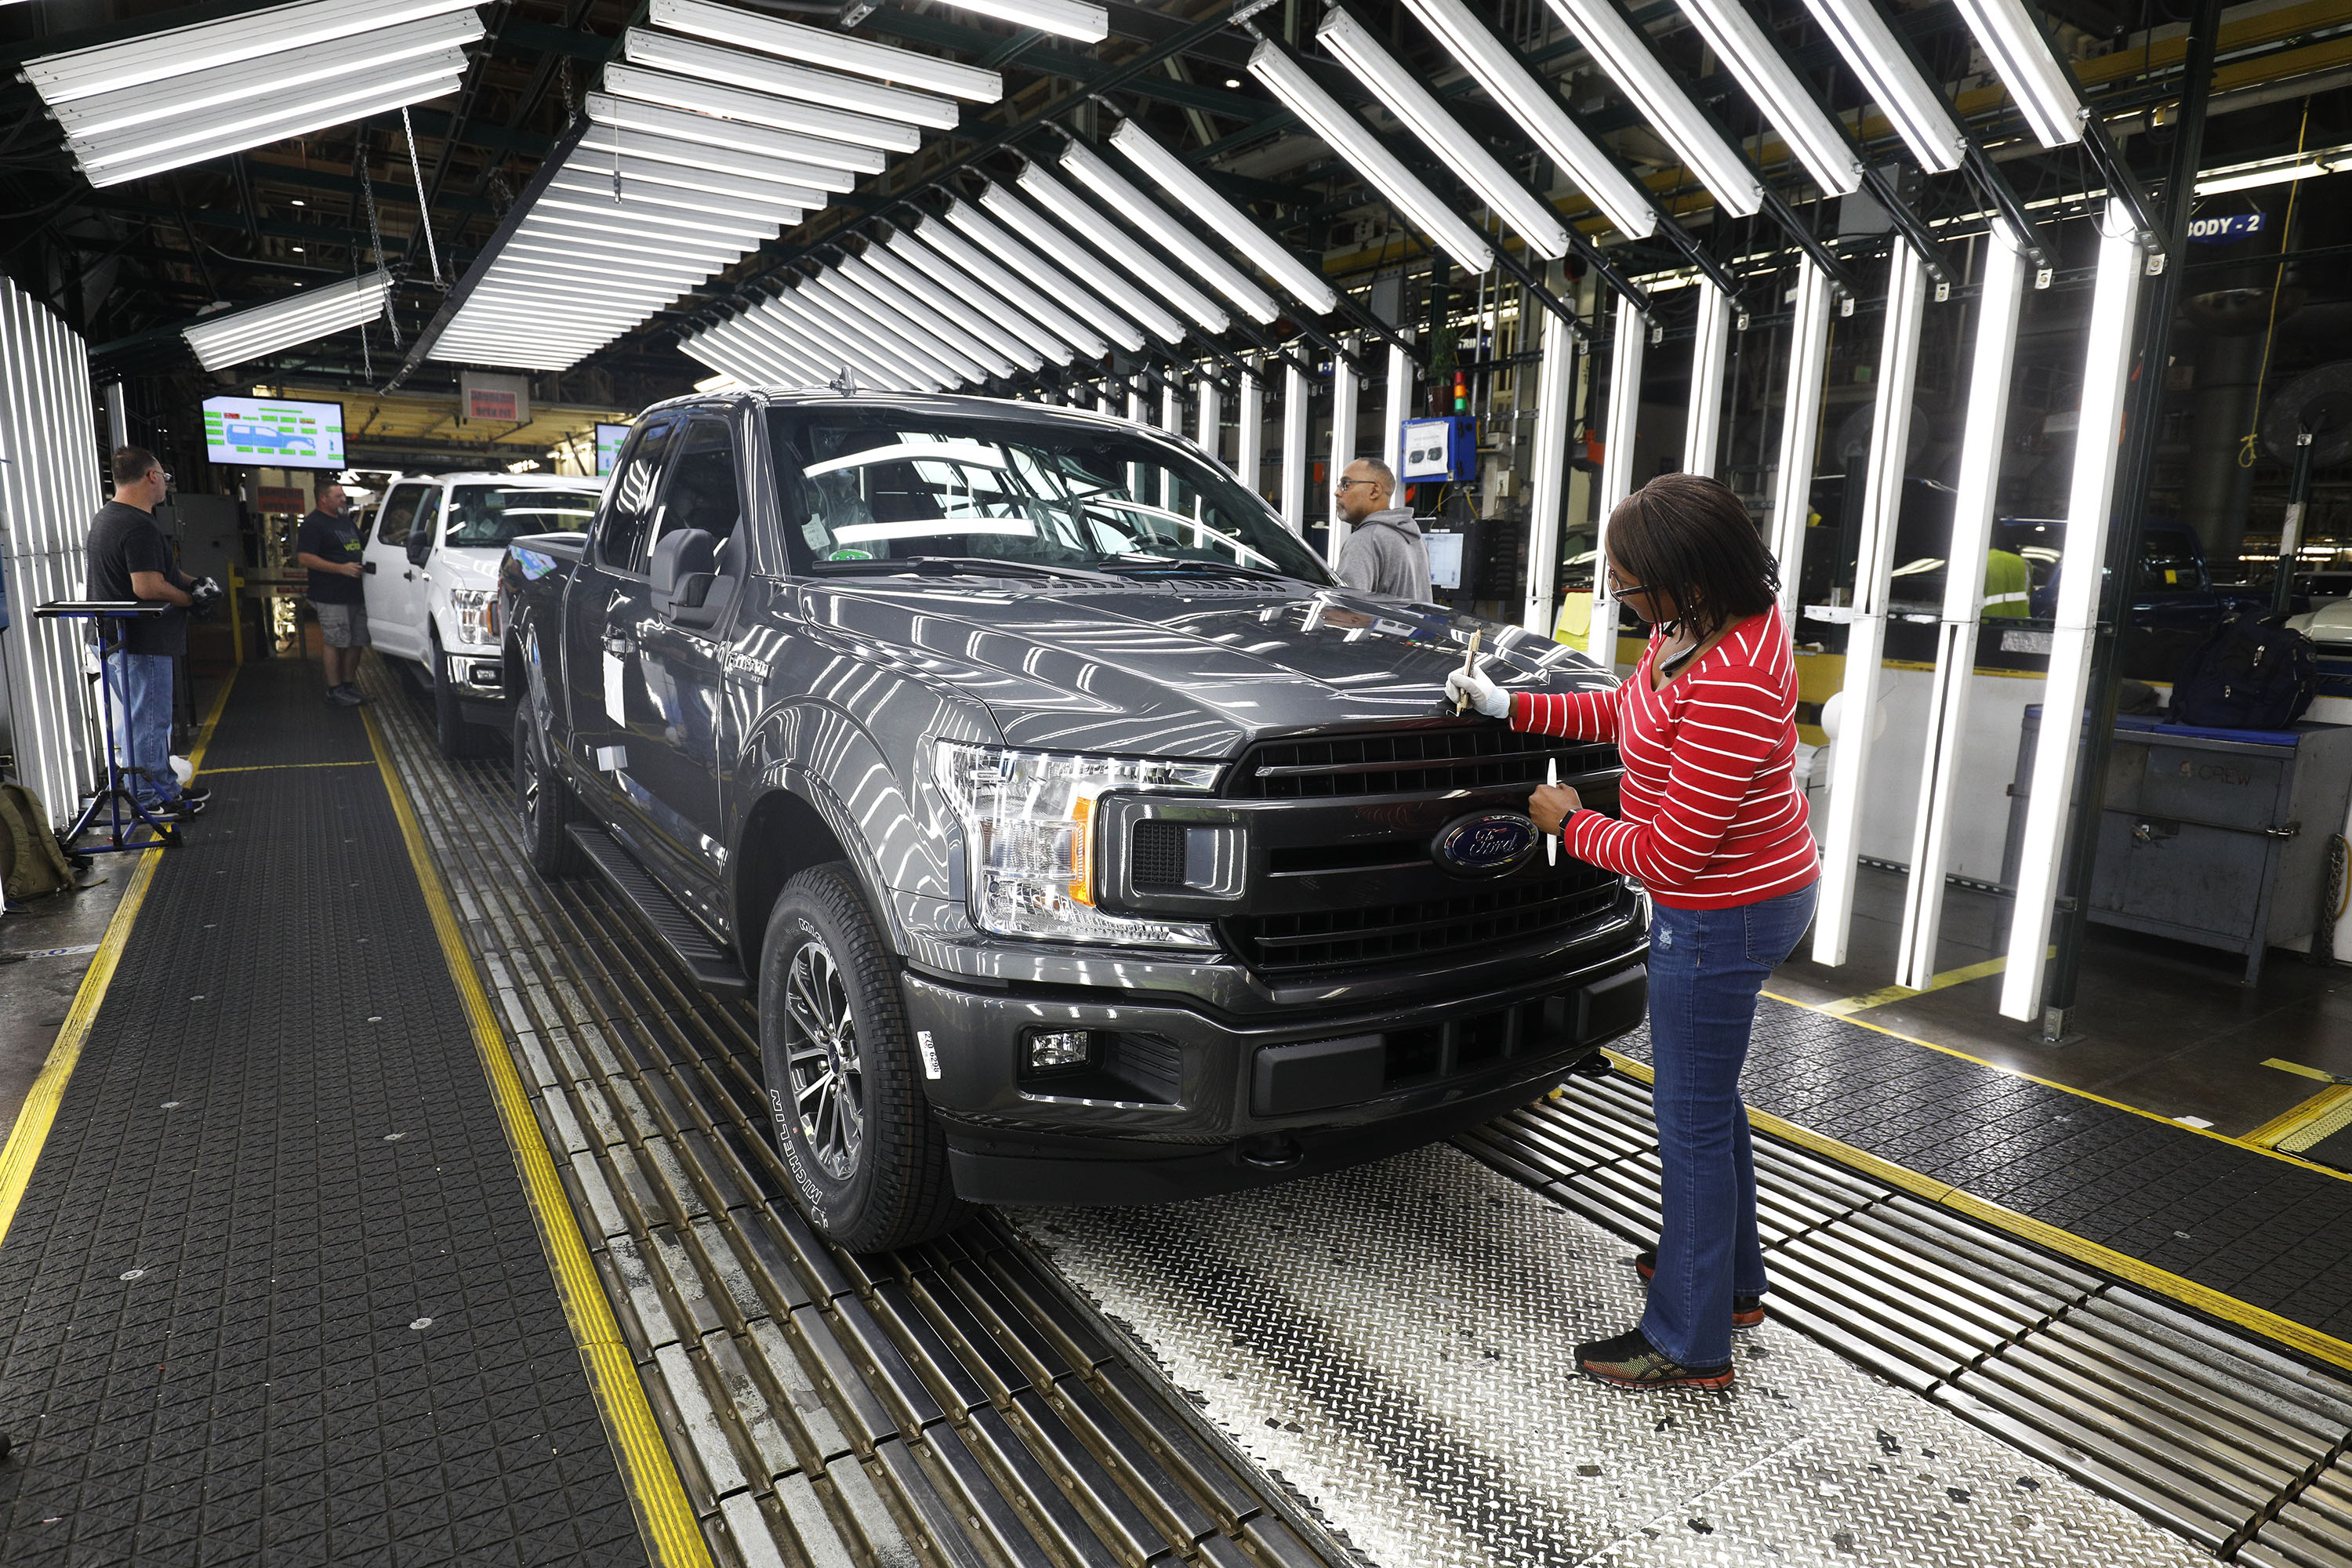 Ford F150 trucks go through the customer acceptance line at the Ford Dearborn Truck Plant on September 27, 2018 in Dearborn, Michigan.